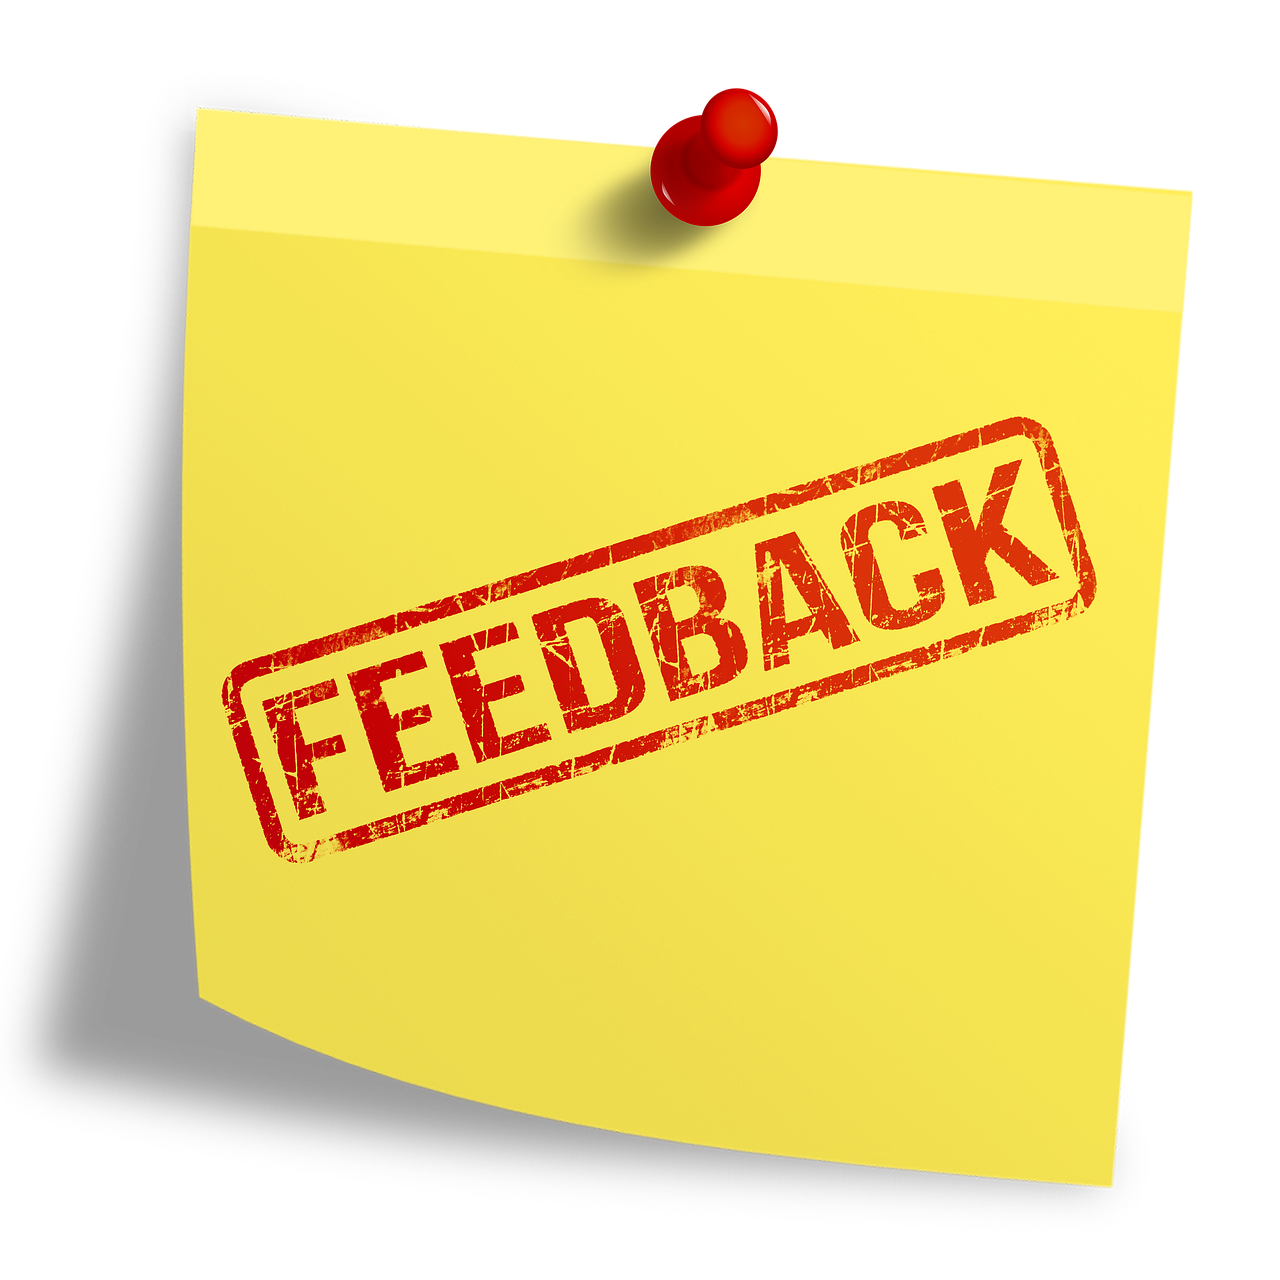 Give your feedback to consultation on preventing ill